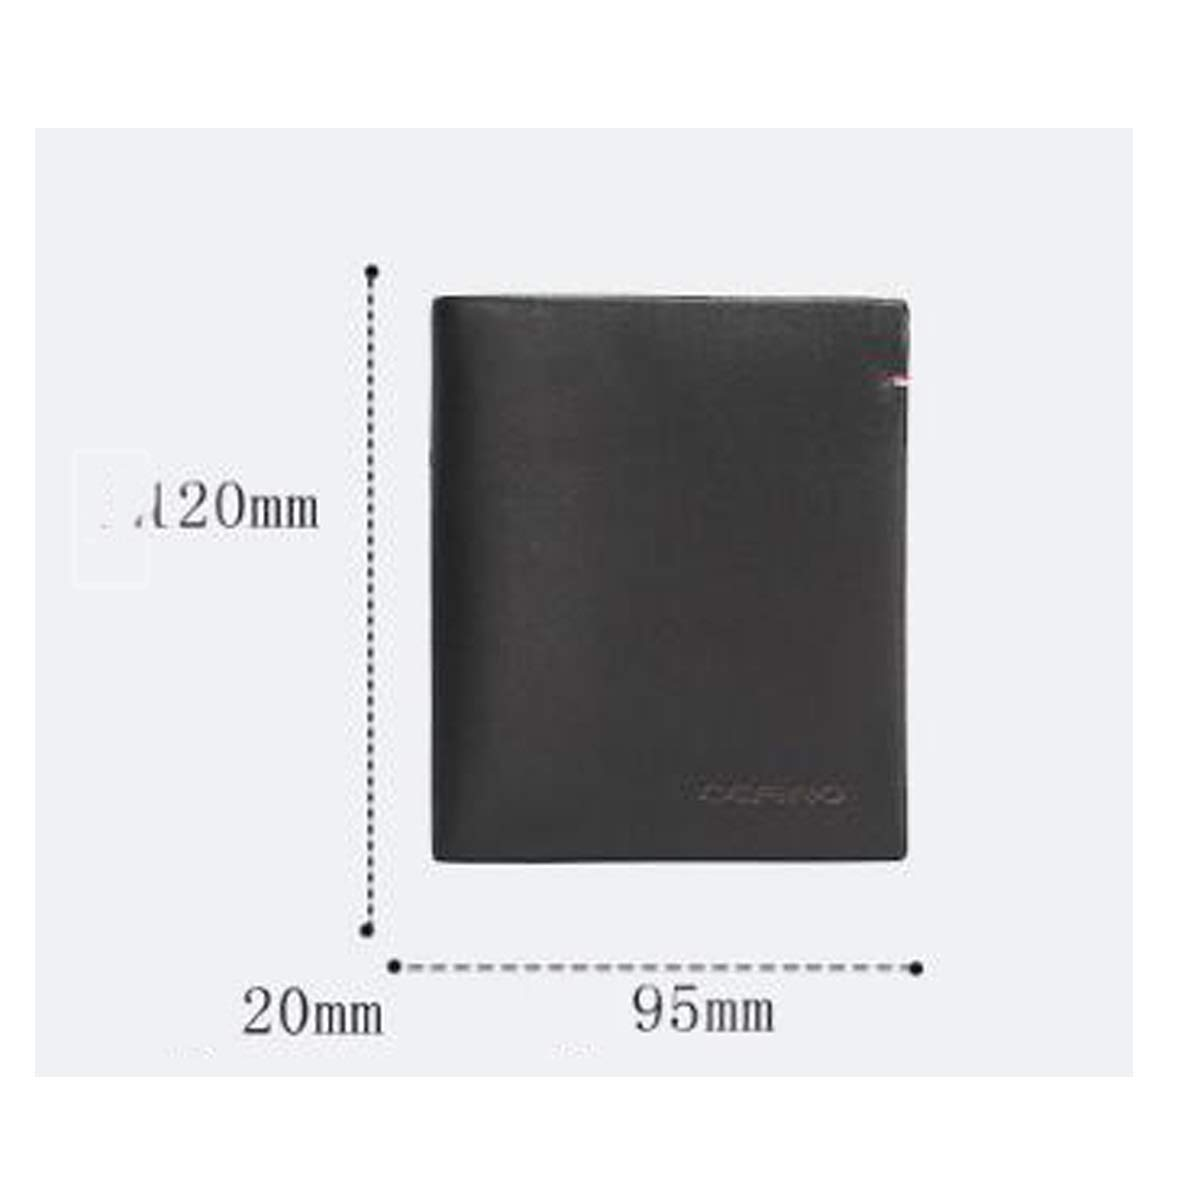 Kalmar RFID Travel Wallet RFID Blocking Slim Bifold Genuine Leather Minimalist Front Pocket Wallets for Men with Money Clip Extra Capacity Travel Wallet Color : Black, Size : 3.74.7 inches